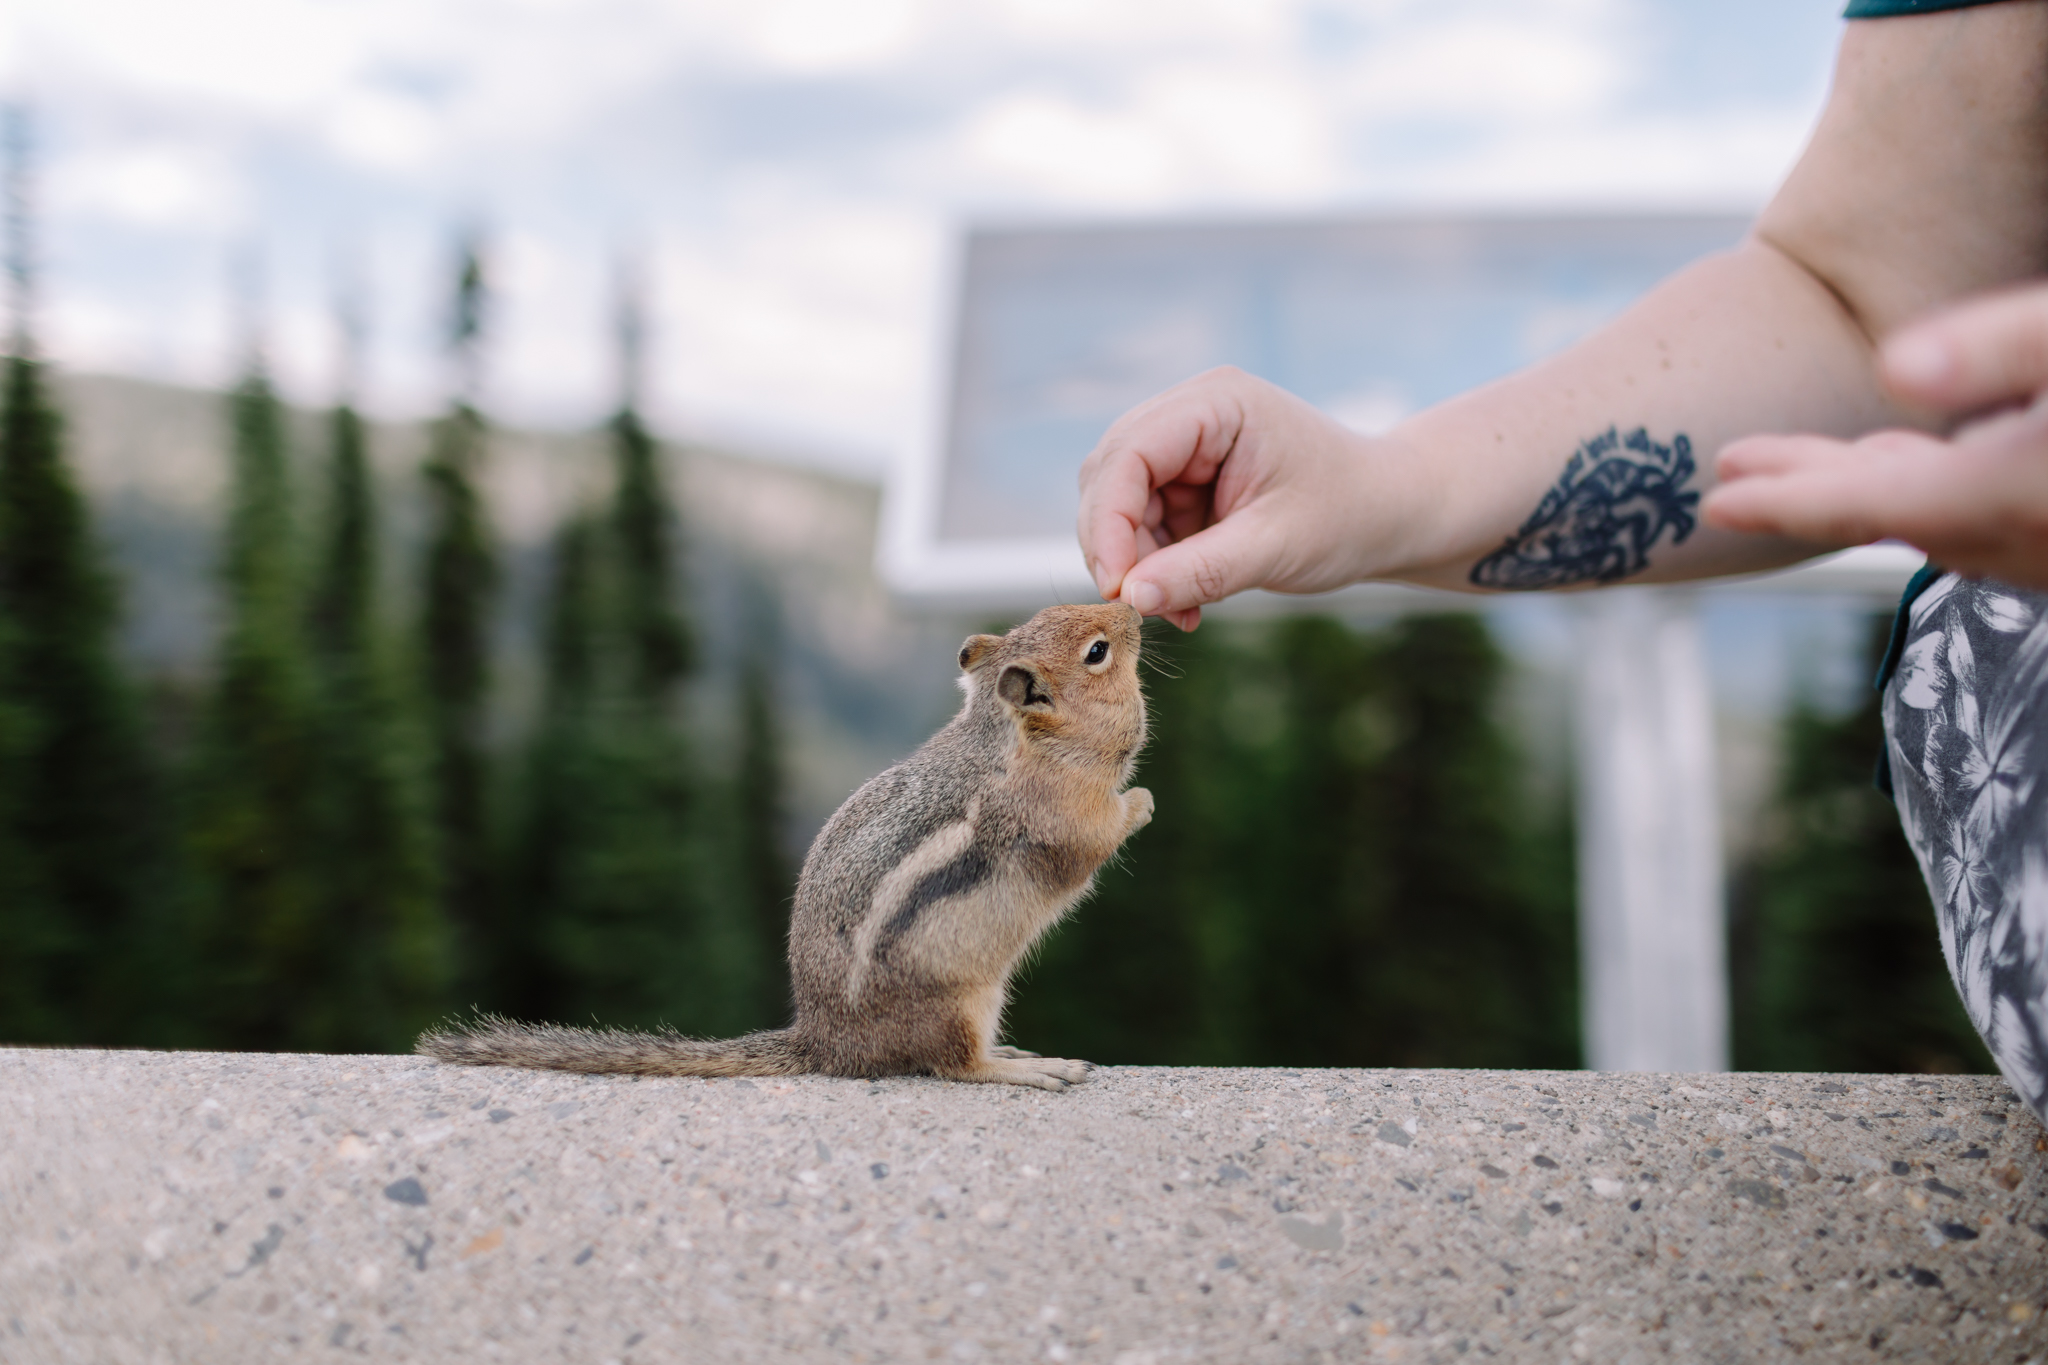 Chipmunk eats from woman's hand